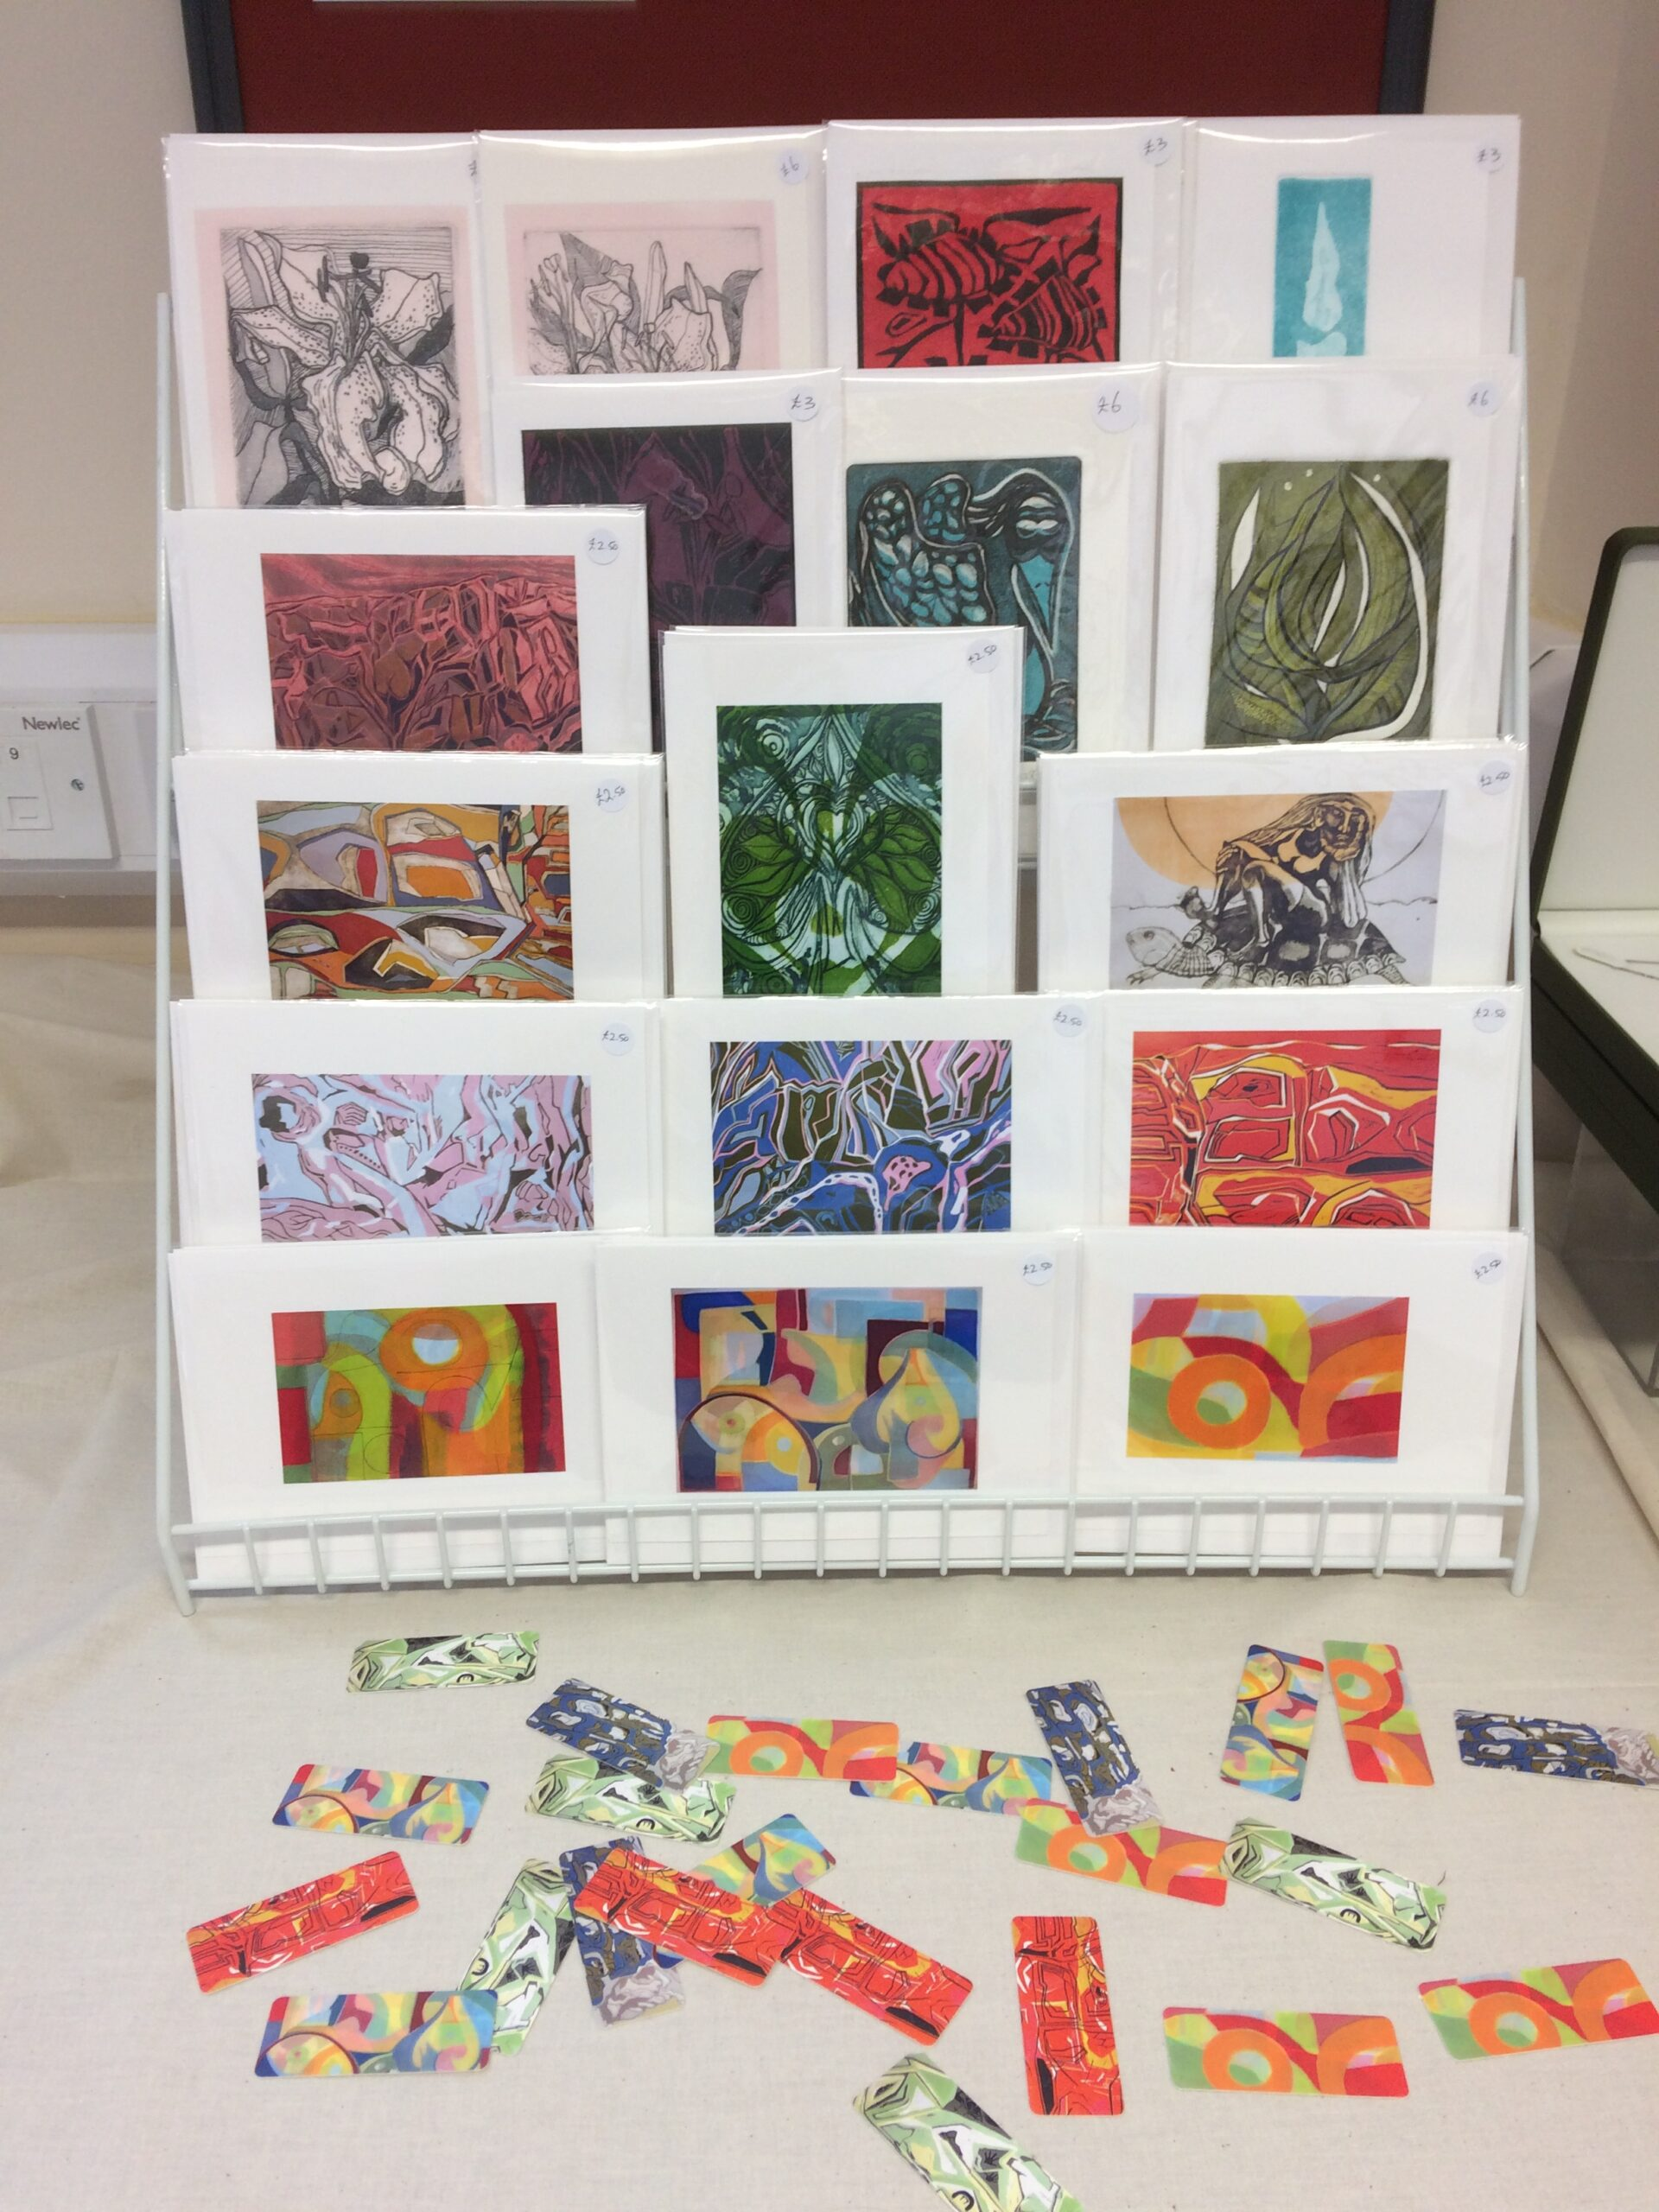 Selection of cards at exhibition